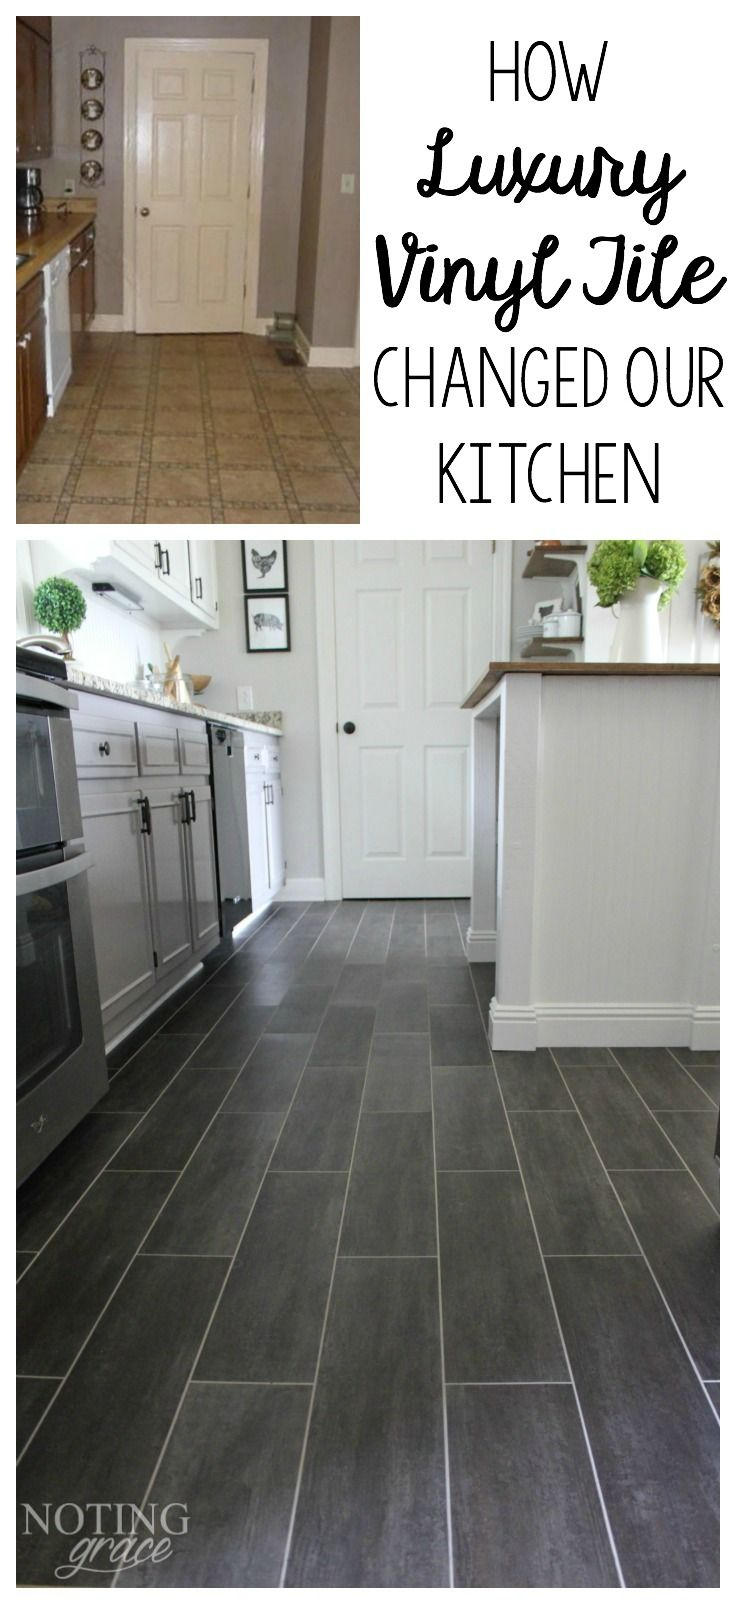 DIY Kitchen Flooring | Ideas for the House | Pinterest | Luxury ...